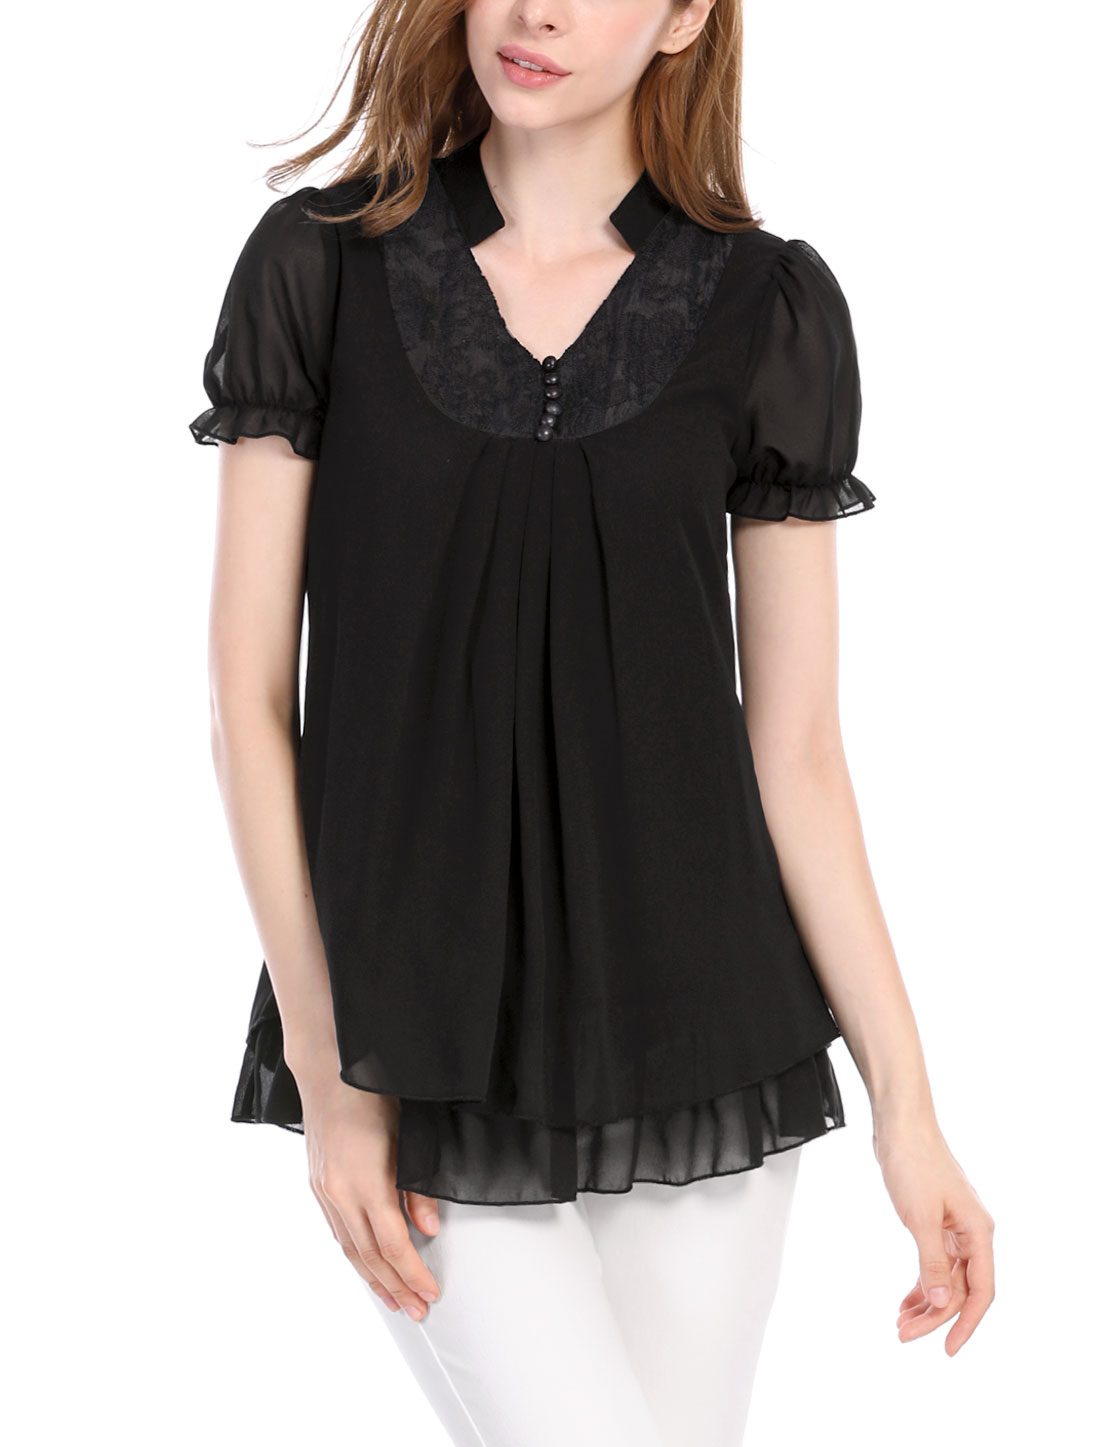 Ladies Short Sleeves Stand Collar Texture Pleated Blouses Black M